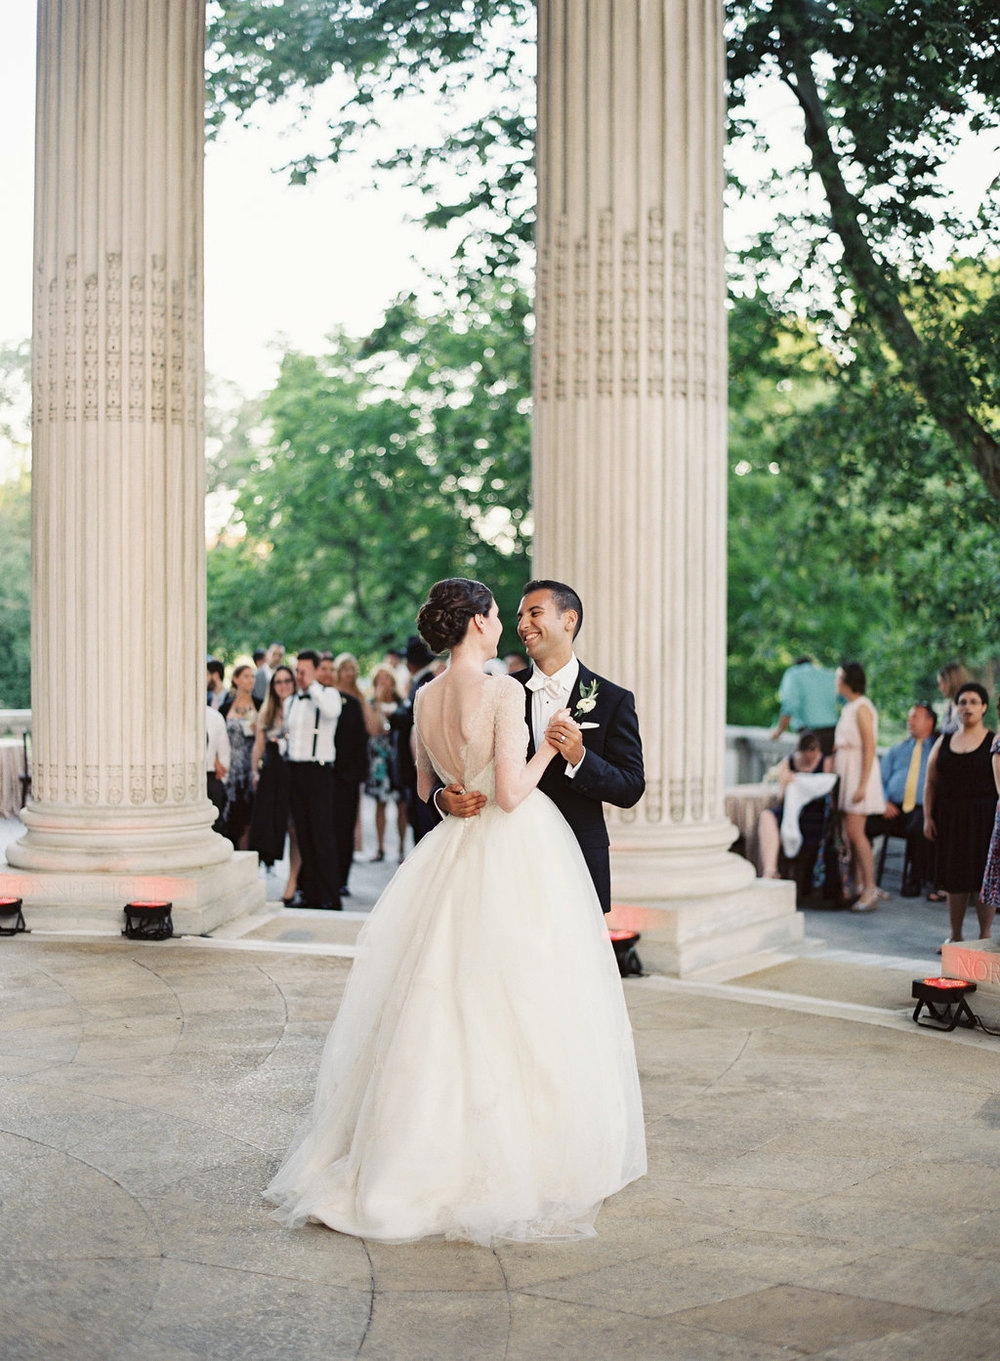 Vicki Grafton Photography - Fine Art DC Virginia Charlottesville Film Wedding Photographer_0061.jpg